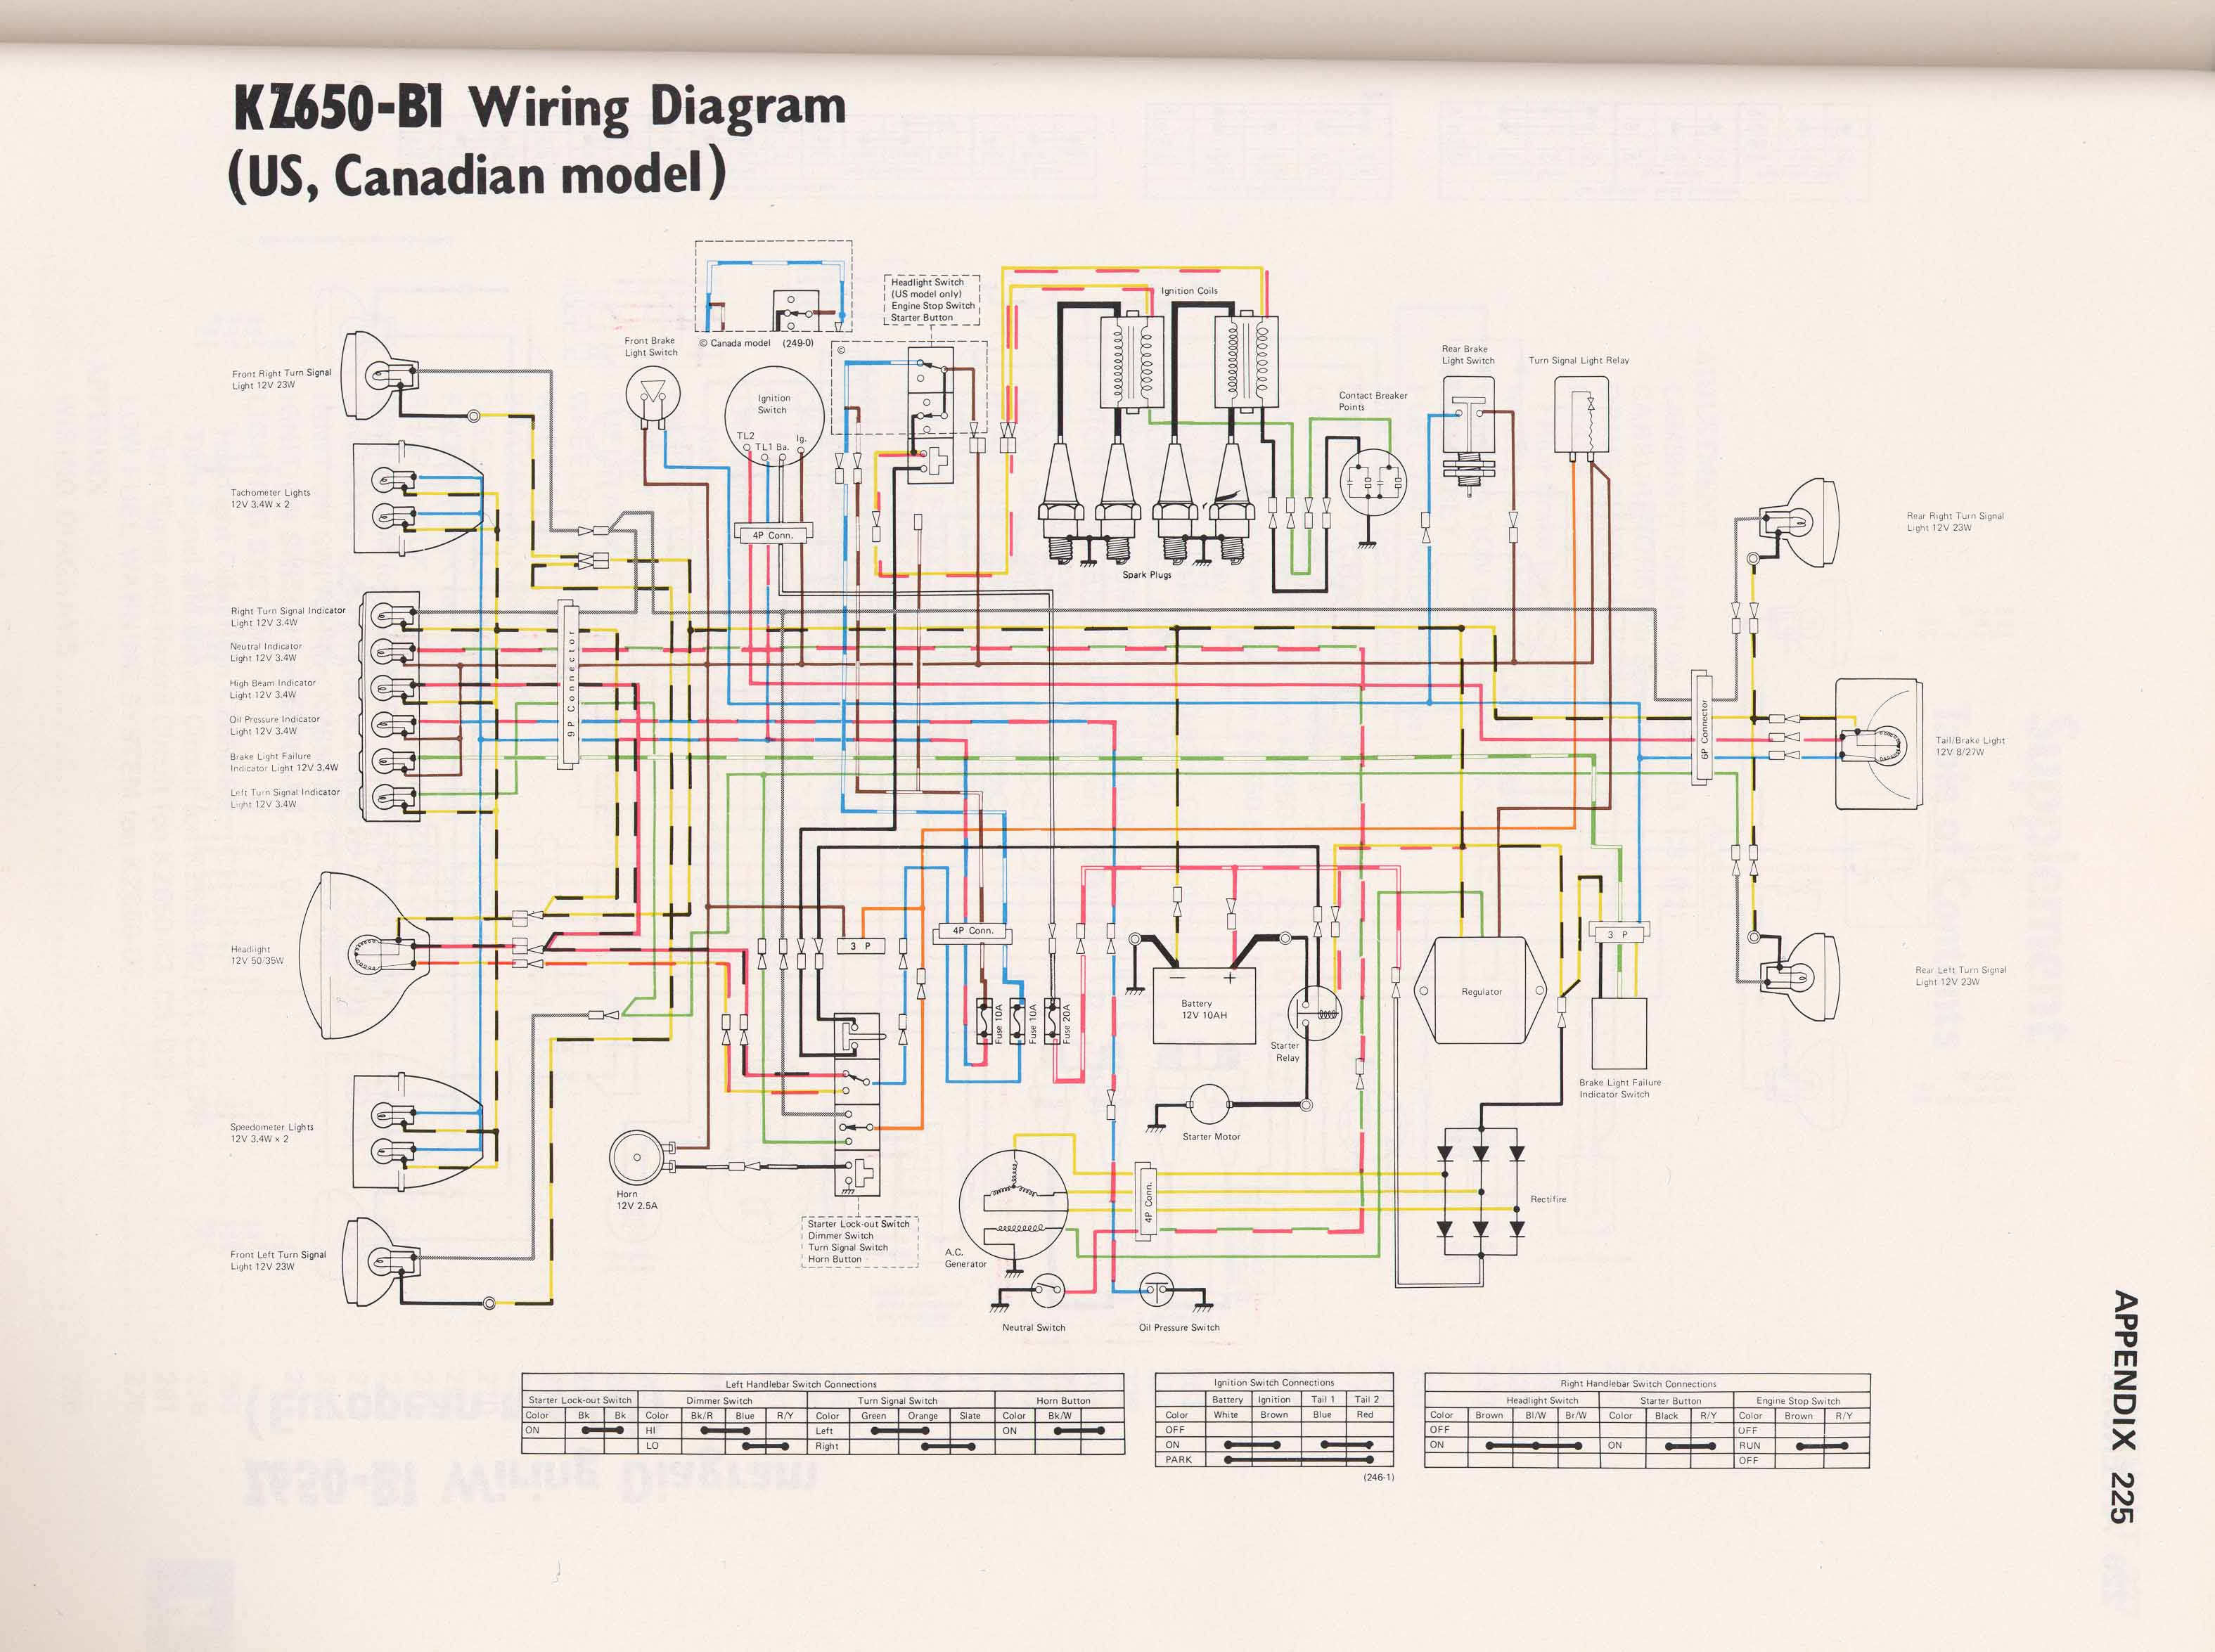 KZ650 B1 kz650 info wiring diagrams ignition wiring diagram at readyjetset.co